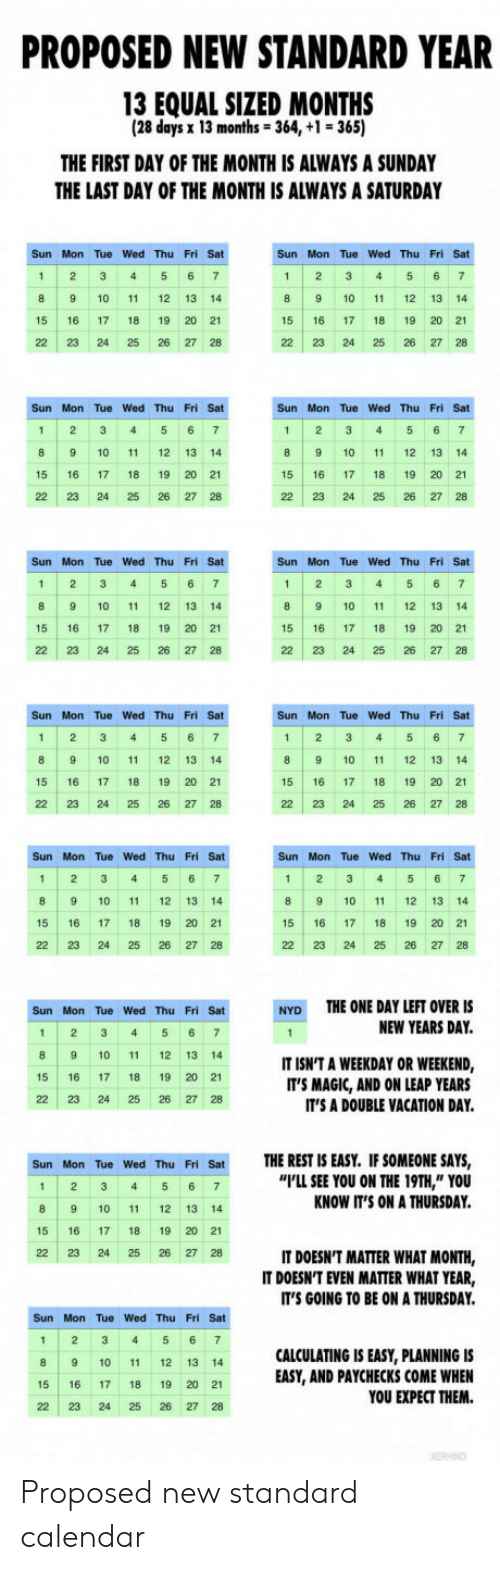 """new years day: PROPOSED NEW STANDARD YEAR  13 EQUAL SIZED MONTHS  (28 days x 13 months-364, +1 365)  THE FIRST DAY OF THE MONTH IS ALWAYS A SUNDAY  THE LAST DAY OF THE MONTH IS ALWAYS A SATURDAY  Sun Mon Tue Wed Thu Fri Sat  8 9 10 11 12 13 14  15 16 17 18 19 20 21  22 23 24 25 26 27 28  Sun Mon Tue Wed Thu Fri Sat  1 2 3 456 7  8 9 10 1 12 13 14  15 16 17 18 19 20 21  22 23 24 25 26 27 28  Sun Mon Tue Wed Thu Fri Sat  1 2 3 45 6 7  8 9 10 11 12 13 14  15 16 17 18 19 20 21  22 23 24 25 26 27 28  Sun Mon Tue Wed Thu Fri Sat  1 2 3 45 6 7  8 9 10 11 12 13 14  15 16 17 18 19 20 2  221232425262728  Sun Mon Tue Wed Thu Fri Sat  1 2 3 4 5 6 7  8 9 10 1 12 13 14  15 16 17 18 19 20 21  22 23 24 25 26 27 28  Sun Mon Tue Wed Thu Fri Sat  1 2 3 4 5 6 7  8 9 10 11 12 13 14  15 16 17 18 19 20 21  22 23 24 25 26 27 28  Sun Mon Tue Wed Thu Fri Sat  Sun Mon Tue Wed Thu Fri Sat  8 9 10 11 12 13 14  15 16 17 18 19 20 21  22 23 24 25 26 27 28  8 9 10 11 12 13 14  15 16 17 18 19 20 21  22 23 24 25 26 27 28  Sun Mon Tue Wed Thu Fri Sat  1 2 345 67  8 9 10 11 12 13 14  15 16 17 18 19 20 21  22 23 24 25 26 27 28  Sun Mon Tue Wed Thu Fri Sat  1 2 345 6 7  8 9 10 11 12 13 14  15 16 1718 19 20 21  22 23 24 25 26 27 28  THE ONE DAY LEFT OVER IS  NEW YEARS DAY.  Sun Mon Tue Wed Thu Fri Sat  NYD  8 9 10 11 12 13 14  15 16 1718 19 20 21  22 23 24 25 26 27 28  IT ISN'T A WEEKDAY OR WEEKEND,  IT'S MAGIC, AND ON LEAP YEARS  IT'S A DOUBLE VACATION DAY.  THE REST IS EASY. IF SOMEONE SAYS,  I'LL SEE YOU ON THE 19TH,"""" YOU  KNOW IT'S ON A THURSDAY  Sun Mon Tue Wed Thu Fri Sat  1 2 34 5 6 7  8 9 10 11 12 13 14  15 16 17 18 19 20 21  22 23 24 25 26 27 28  IT DOESN'T MATTER WHAT MONTH,  IT DOESN'T EVEN MATTER WHAT YEAR,  IT'S GOING TO BE ON A THURSDAY  Sun Mon Tue Wed Thu Fri Sat  1 2 3 4 5 67  8 9 10 11 12 13 14  15 16 17 18 19 20 2  22 23 24 25 26 27 28  CALCULATING IS EASY, PLANNING IS  EASY, AND PAYCHECKS COME WHEN  YOU EXPECT THEM. Proposed new standard calendar"""